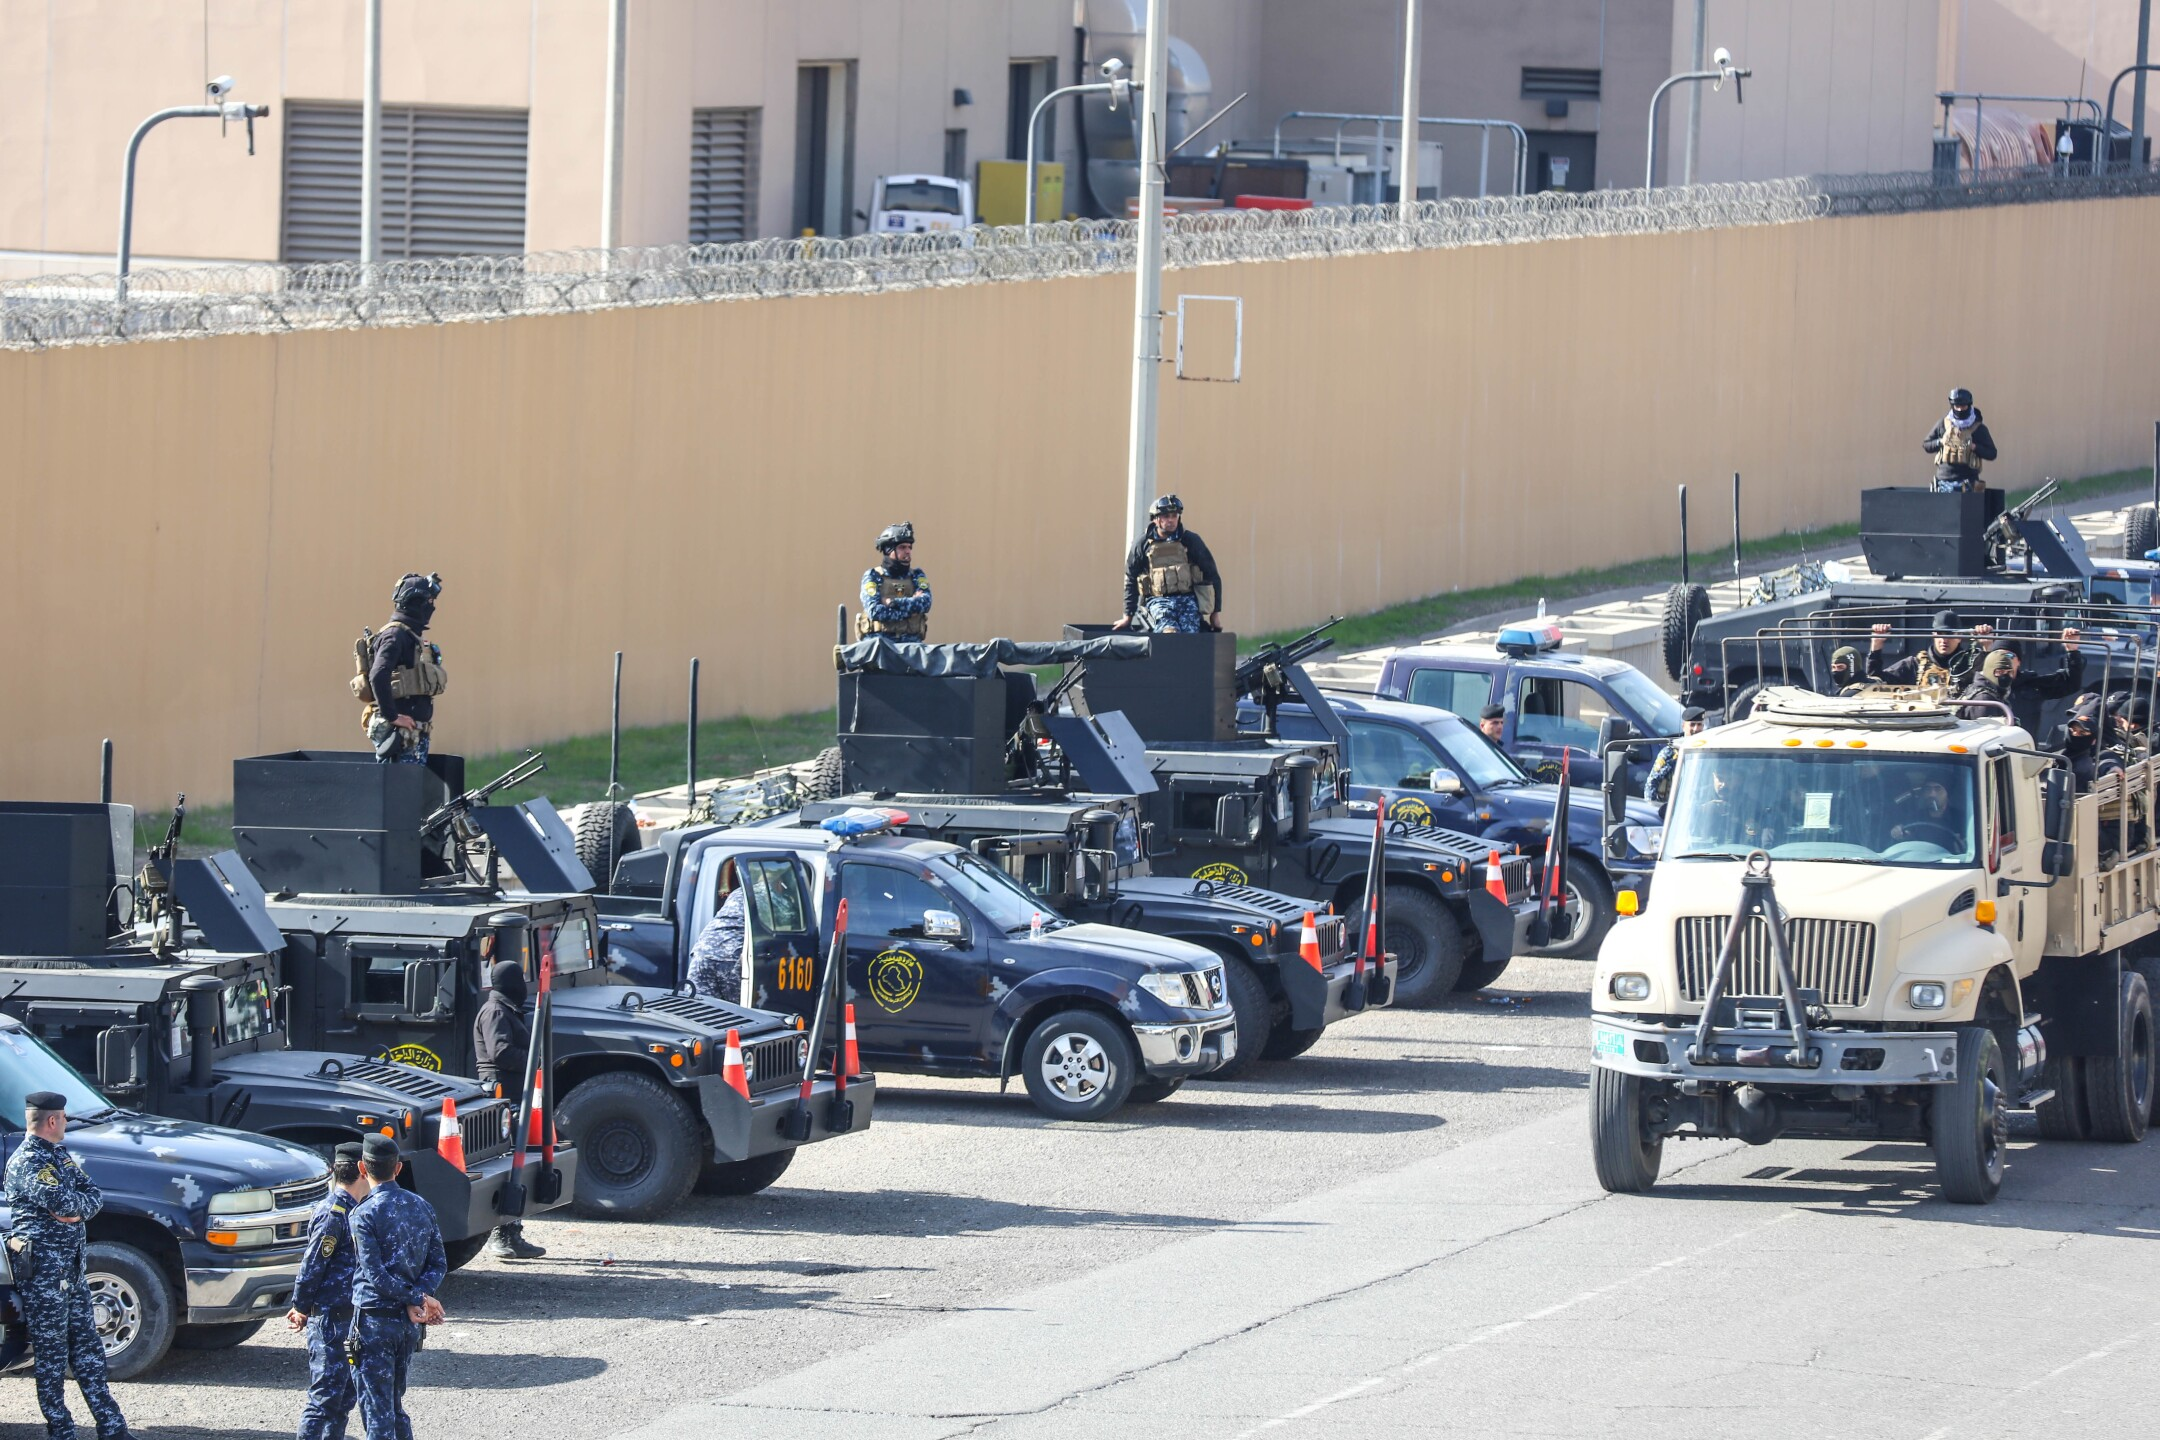 Iraqi Security Forces Respond to U.S. Embassy Attack